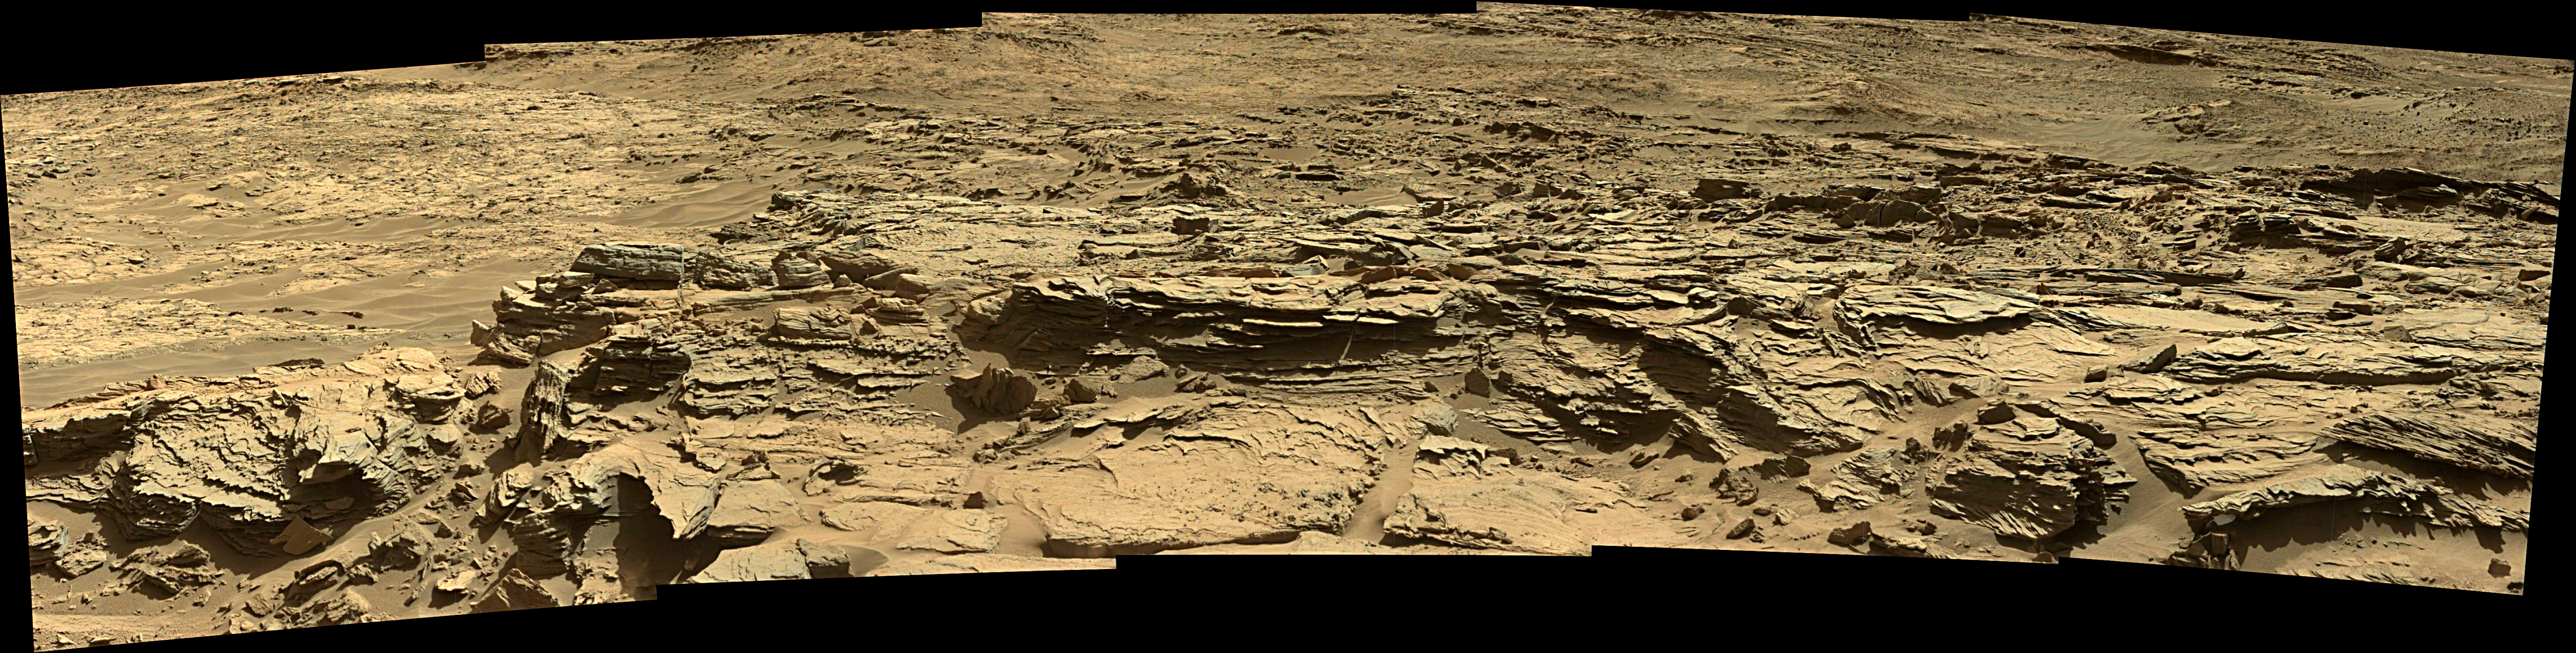 Curiosity Rover Panoramic View 1 of Mars Sol 1301– Click to enlarge